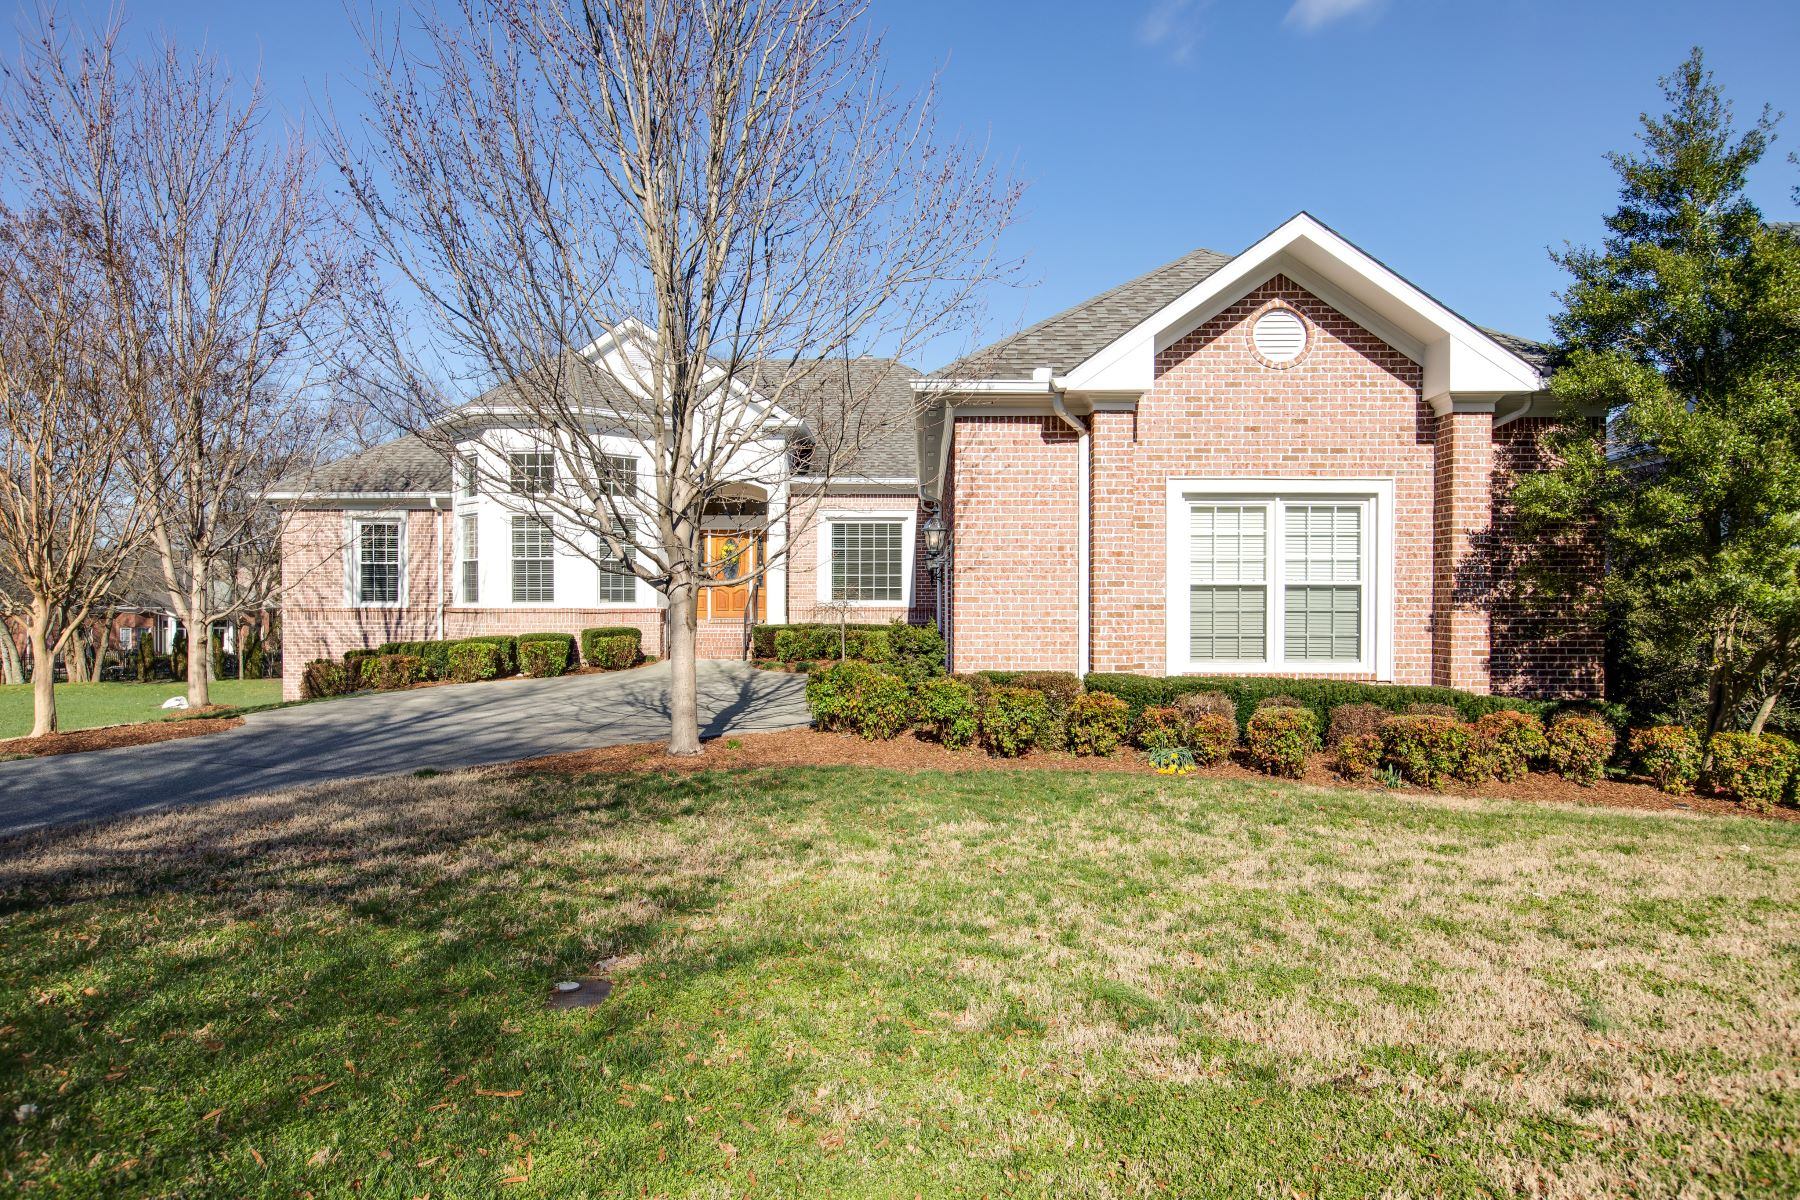 Single Family Home for Sale at Move-In Ready Home in the Heart of Cool Springs! 505 Hope Avenue Franklin, Tennessee 37067 United States